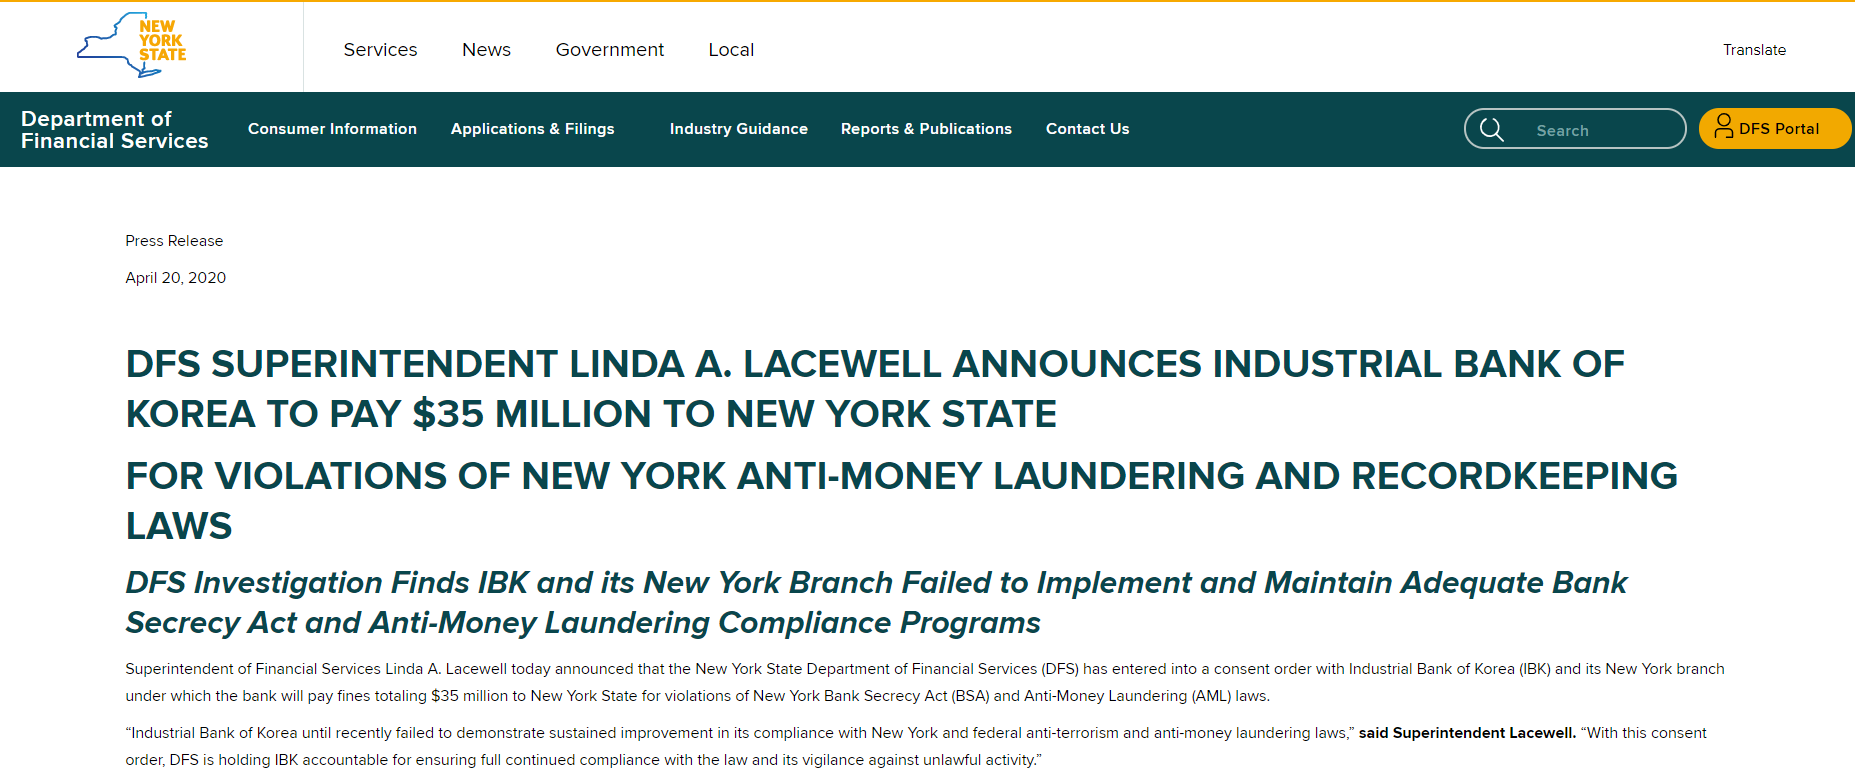 IBK New  York Branch Fined $86 Million for Violations of Anti-Money Laundering